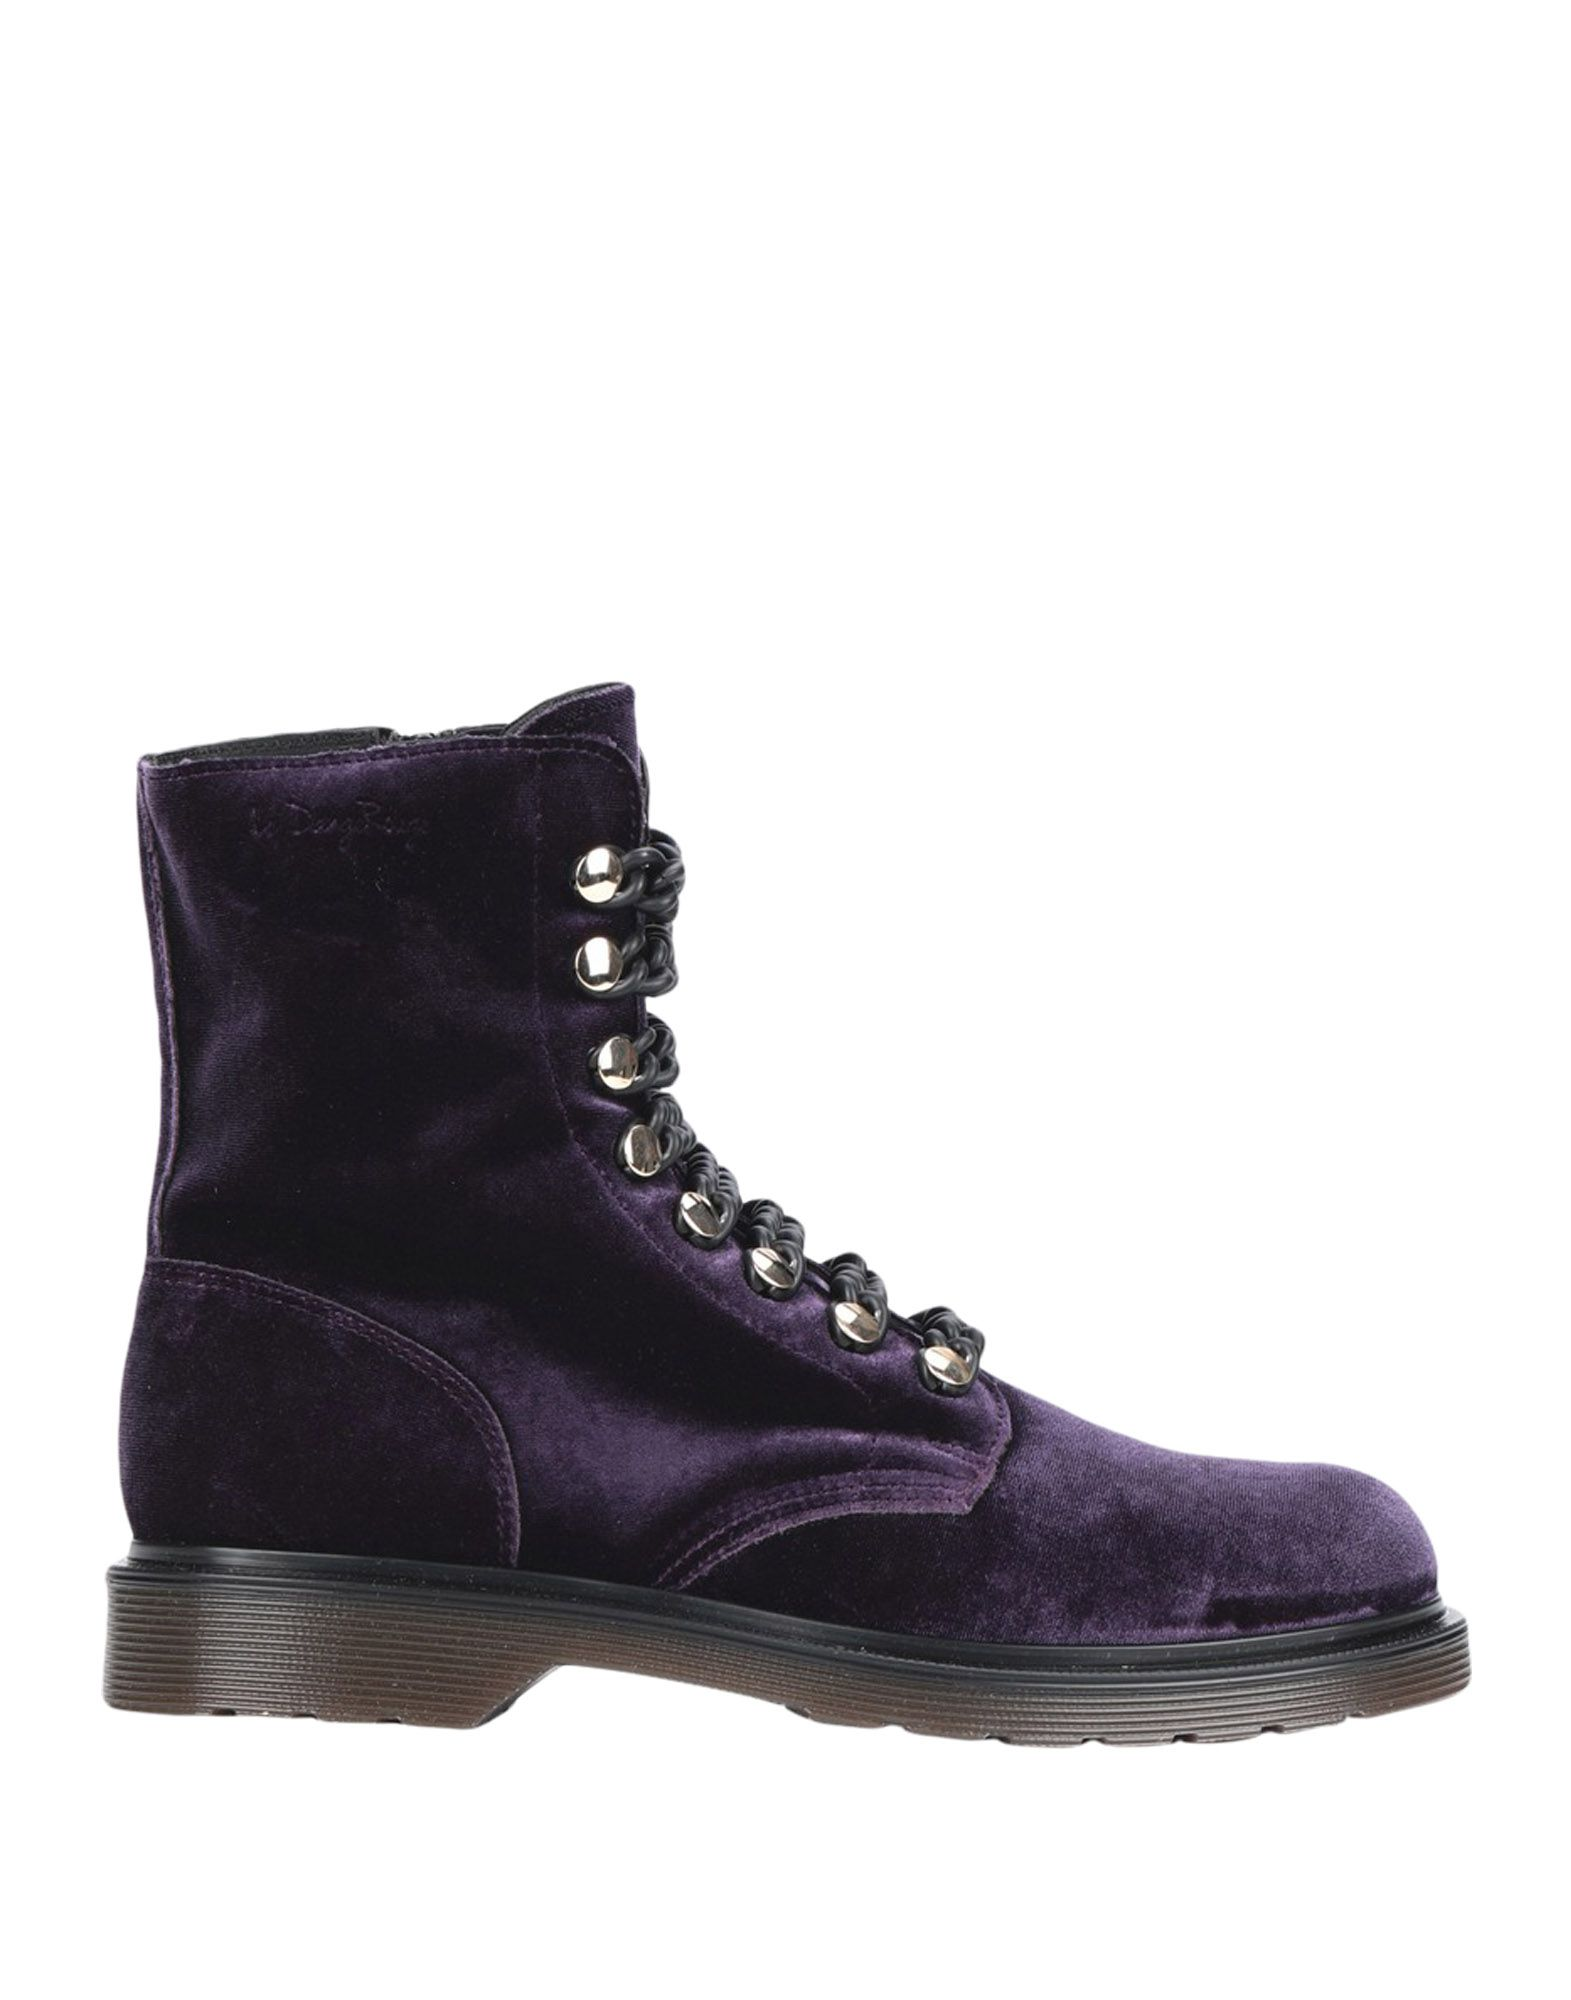 Le Dangerouge Amelie - Ankle Boot Boot Ankle - Women Le Dangerouge Ankle Boots online on  United Kingdom - 11560021WP ef83b8